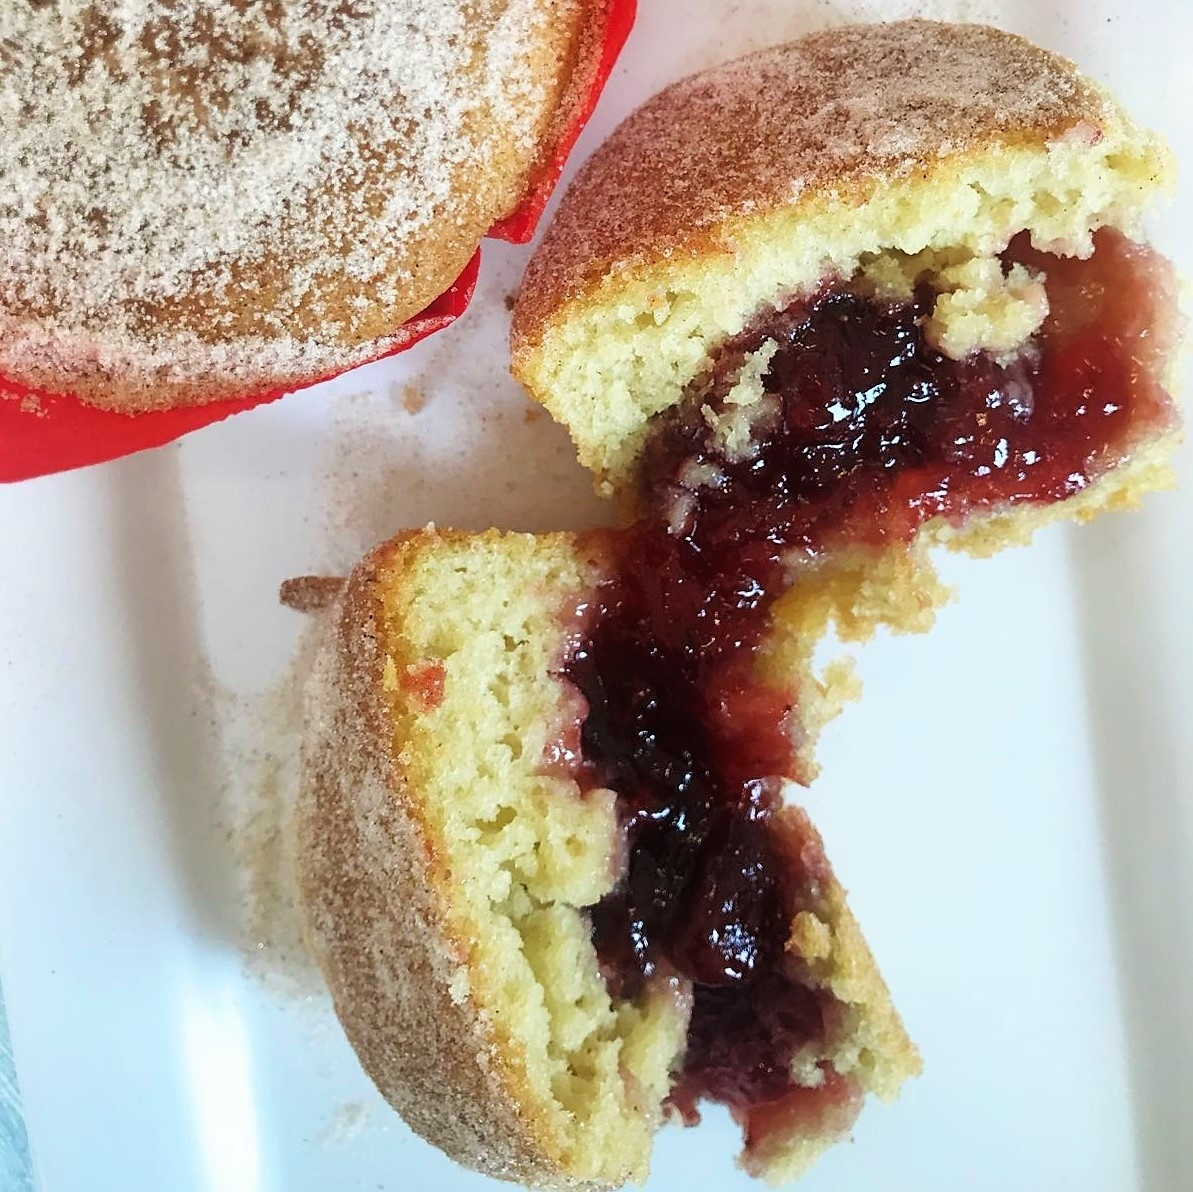 https://i0.wp.com/fatgayvegan.com/wp-content/uploads/2019/06/Jam-Doughnut-Muffin-1-2.jpg?fit=1193%2C1192